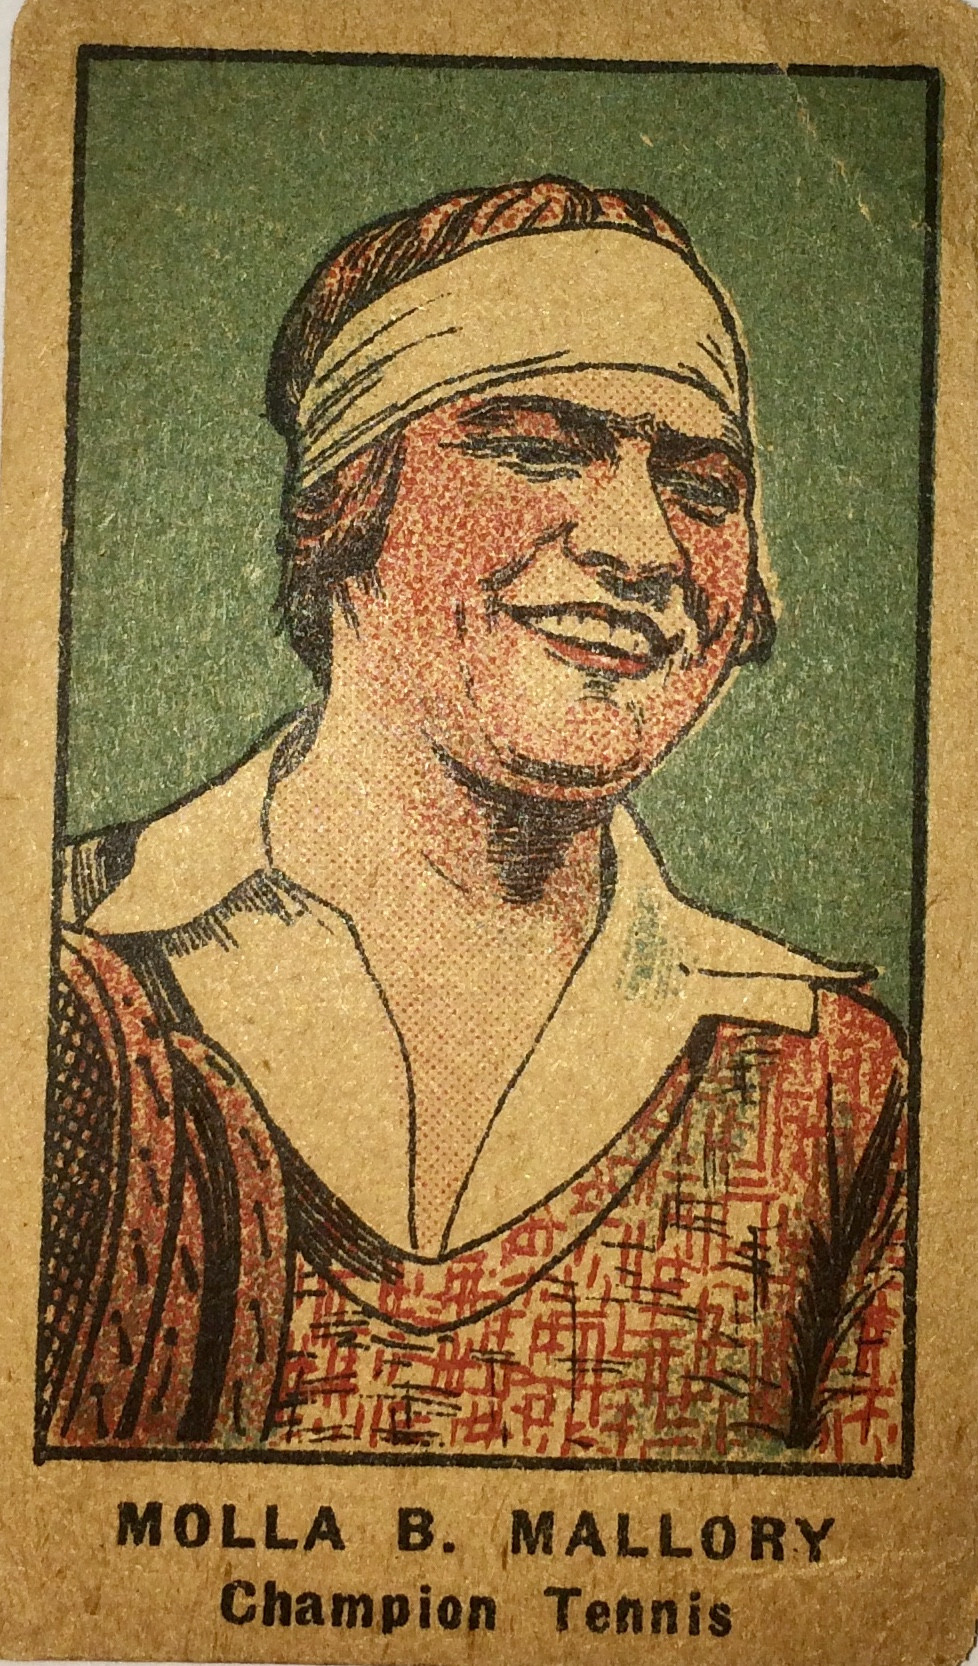 """Card: 1921 Strip card. Strip cards included many athletes, including baseball greats Ty Cobb and Babe Ruth. Cards were hand cut and were called """"strip"""" cards because they were sold in a strip of several cards. Card Size: 1 3/4"""" x 2 5/8""""."""